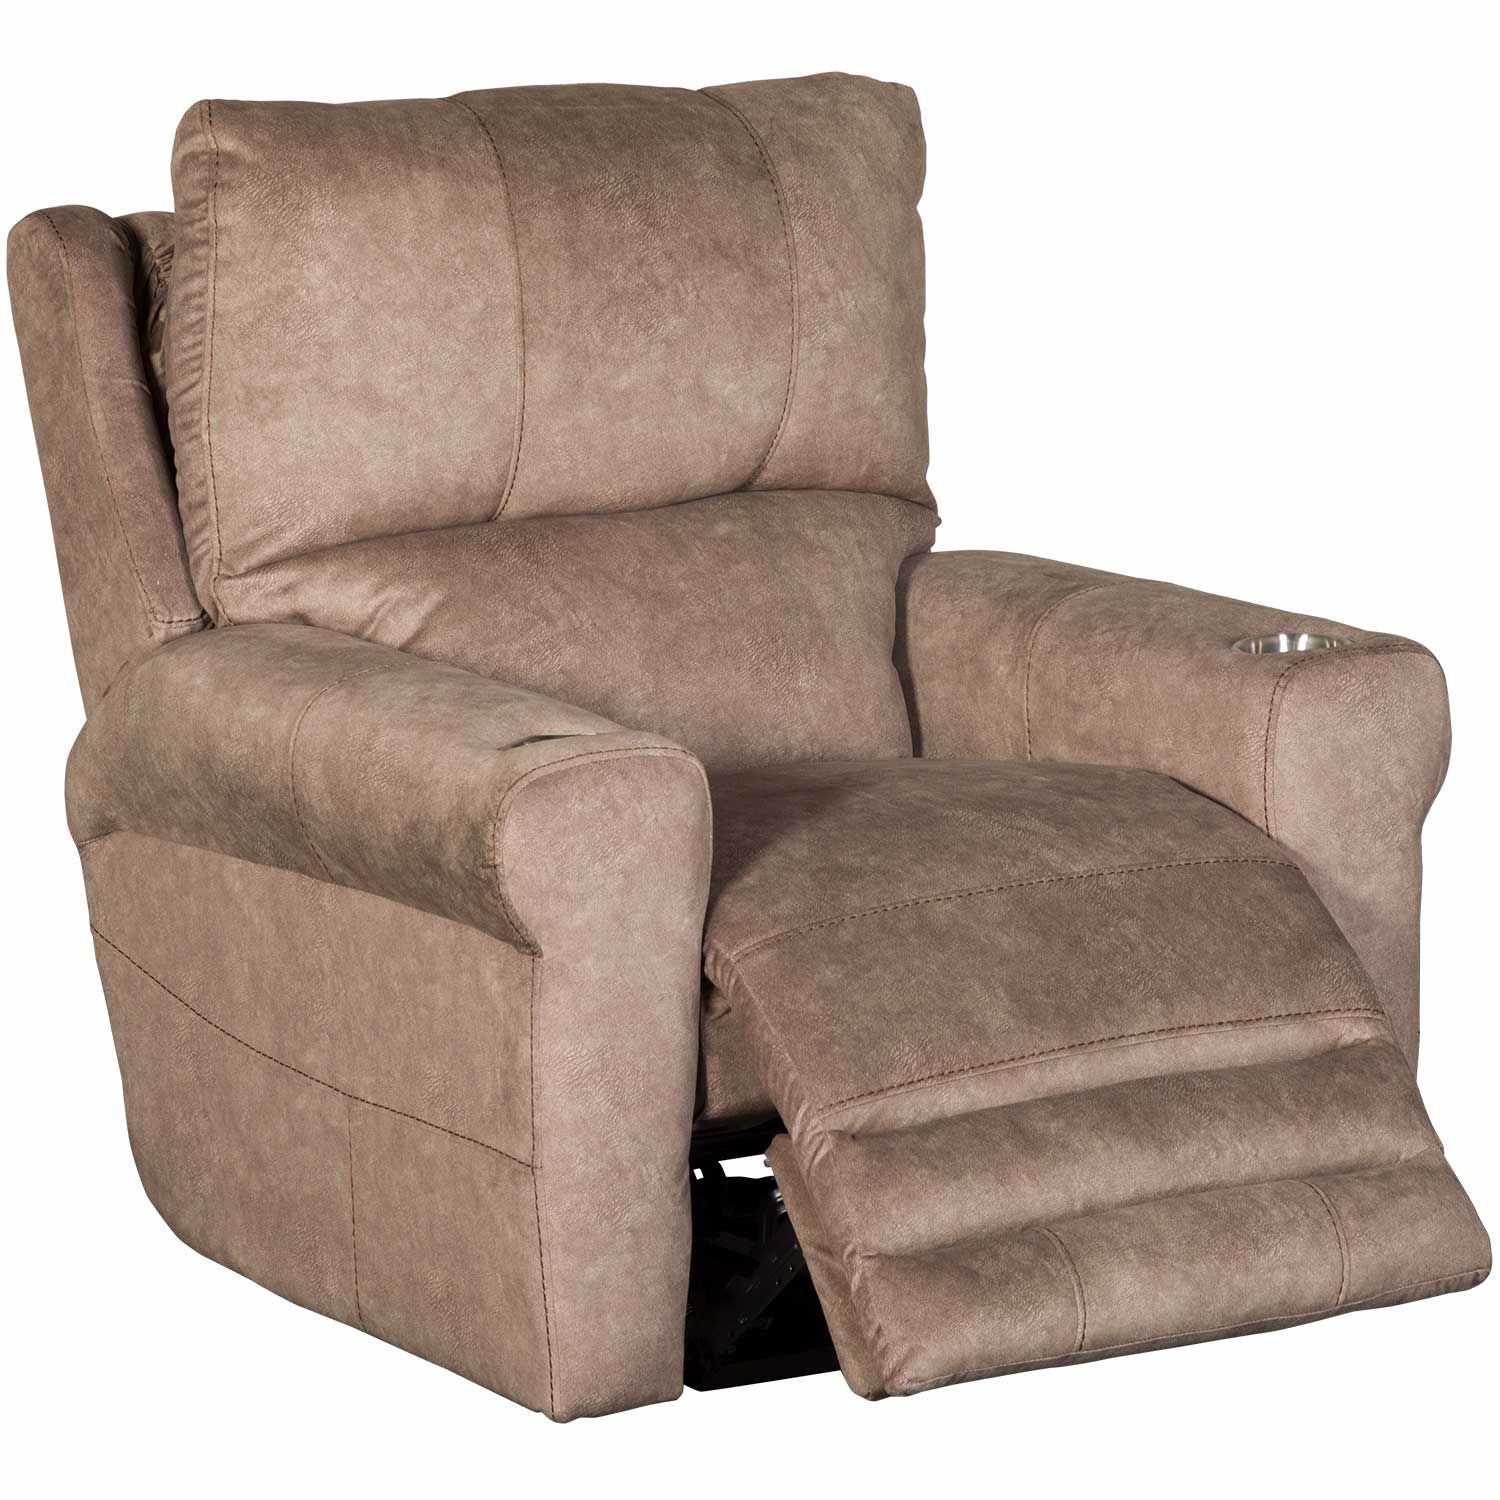 Picture of Vance Portabella Power Recliner with Voice Activated Headrest